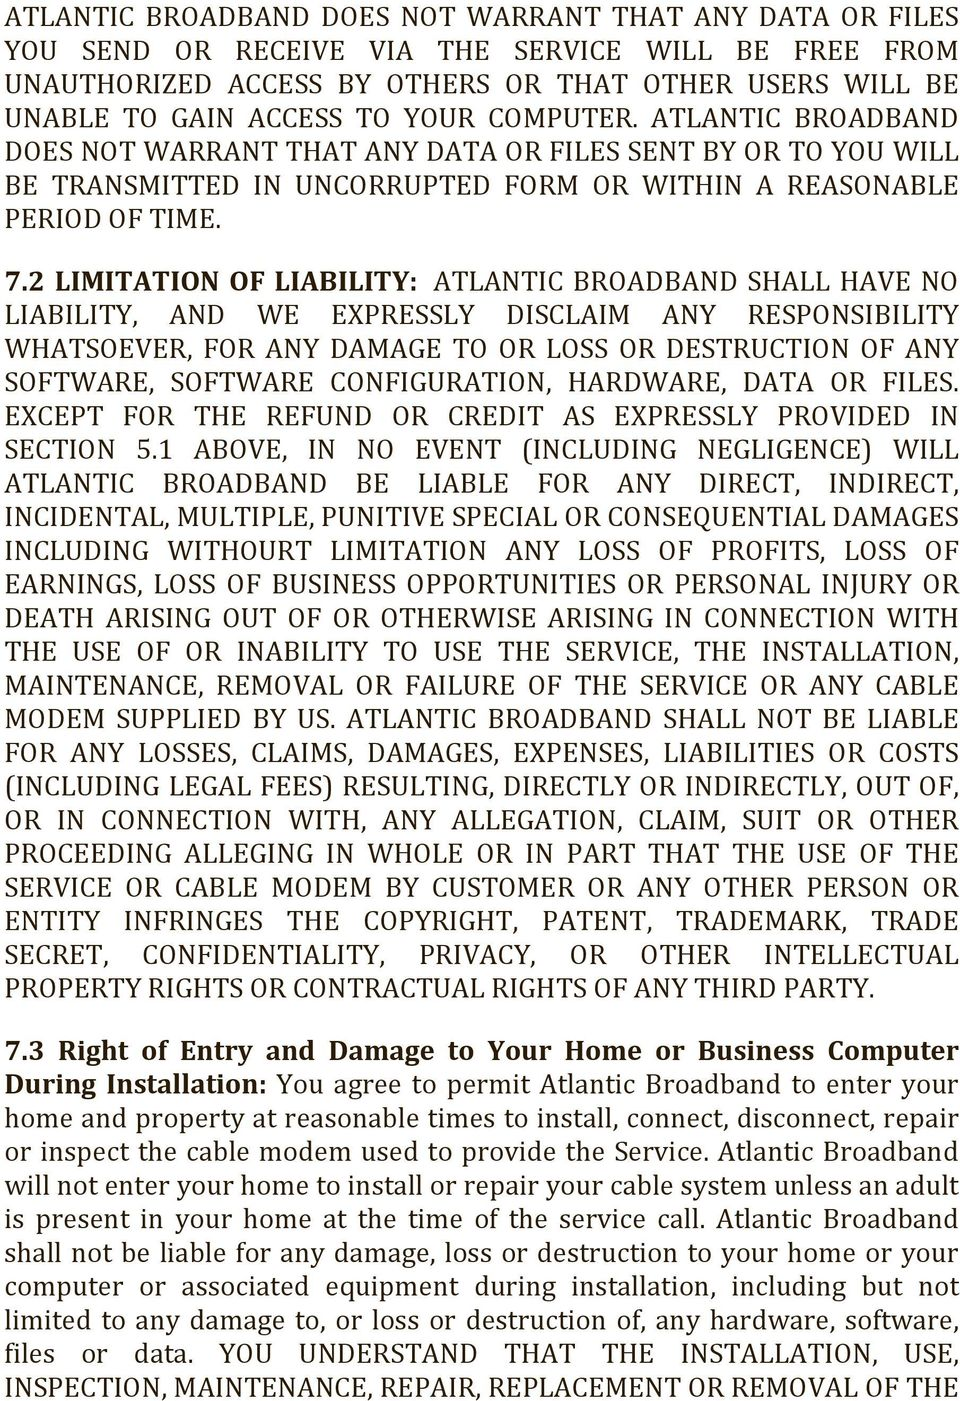 2 LIMITATION OF LIABILITY: ATLANTIC BROADBAND SHALL HAVE NO LIABILITY, AND WE EXPRESSLY DISCLAIM ANY RESPONSIBILITY WHATSOEVER, FOR ANY DAMAGE TO OR LOSS OR DESTRUCTION OF ANY SOFTWARE, SOFTWARE